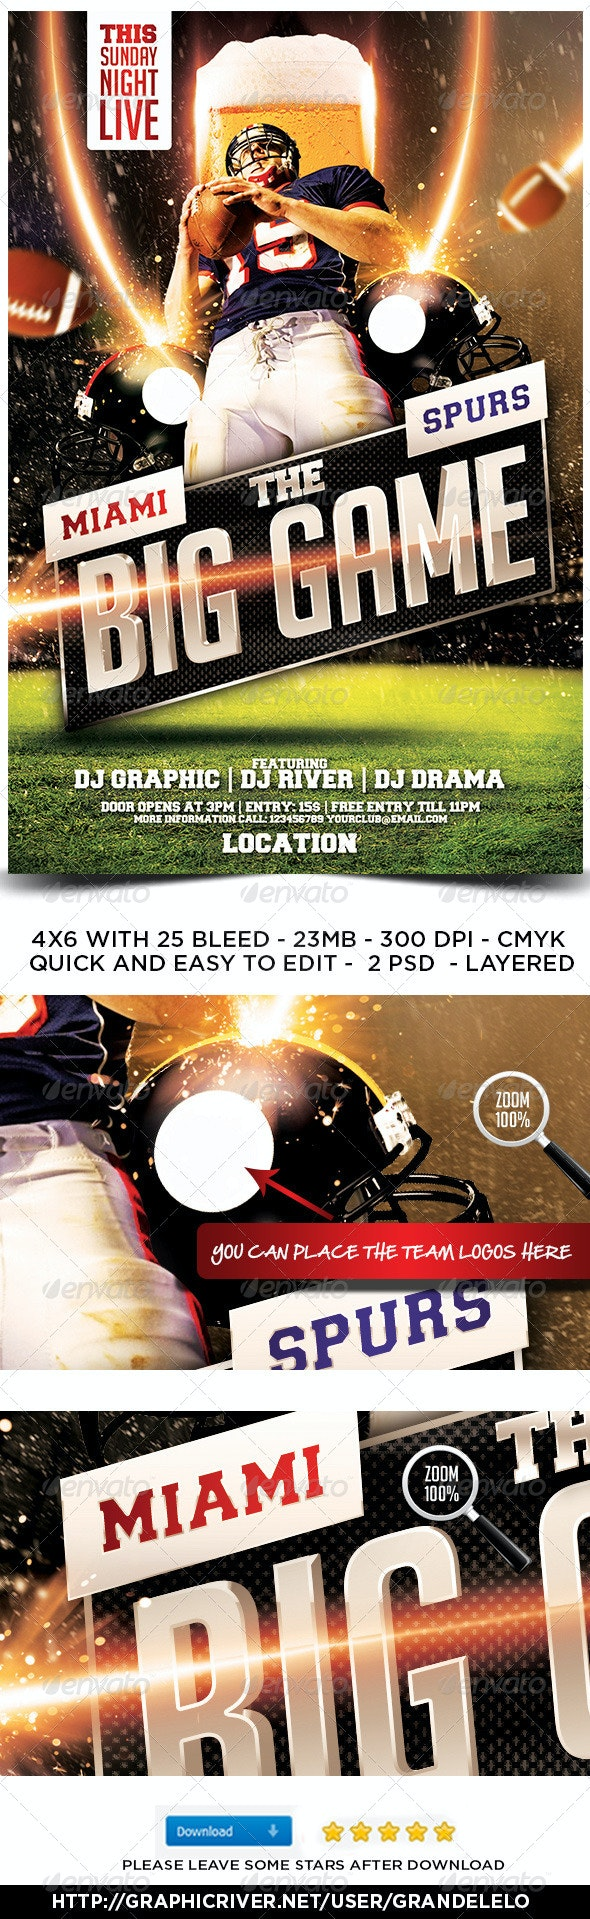 The Big Game Football Flyer 2.0 - Sports Events